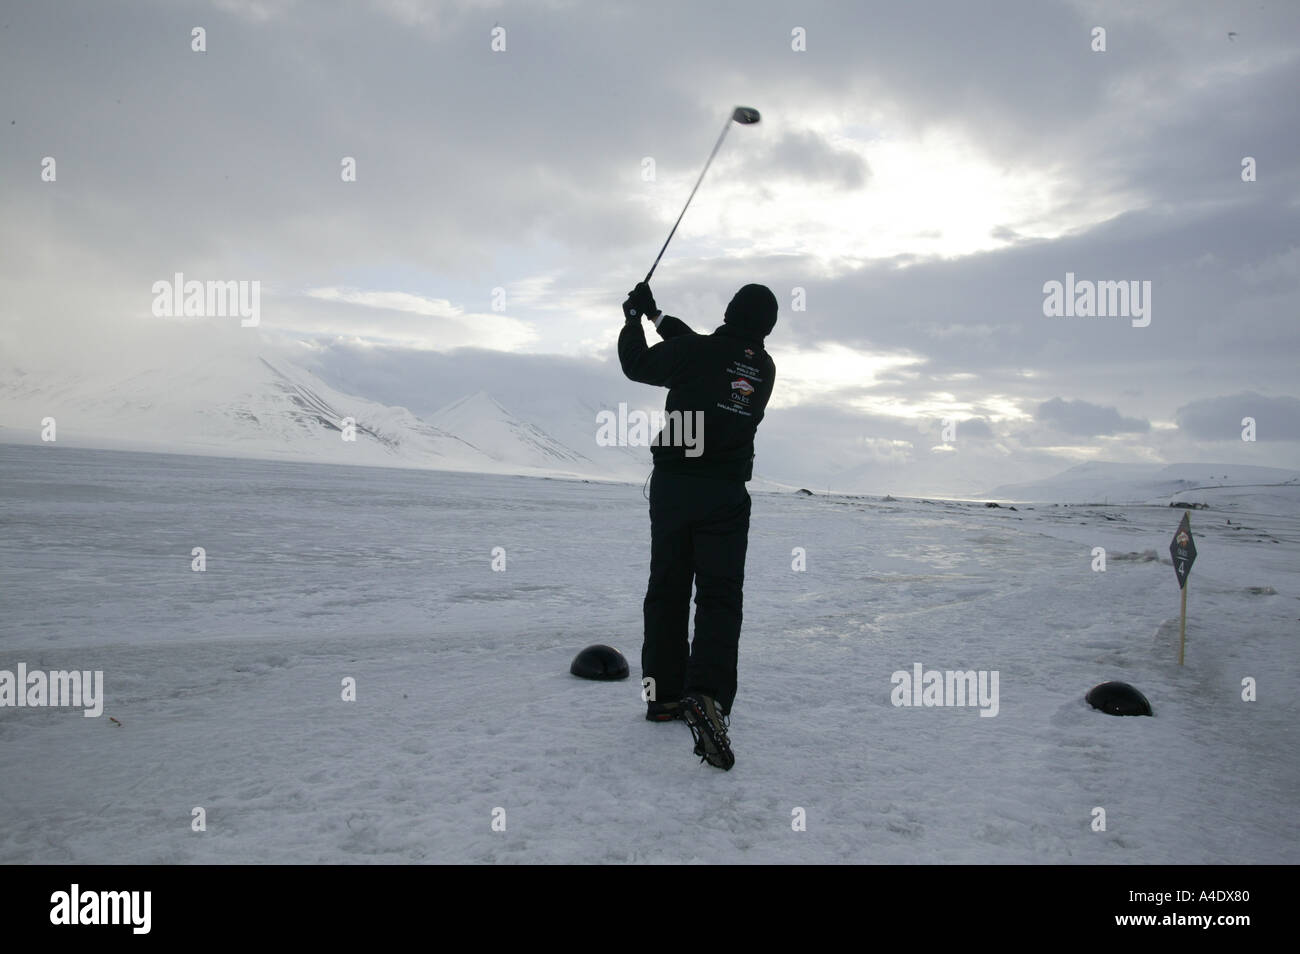 Steve Cowle competing in the 2004 Drambuie ice golf championship in Svalbard, Norway. - Stock Image